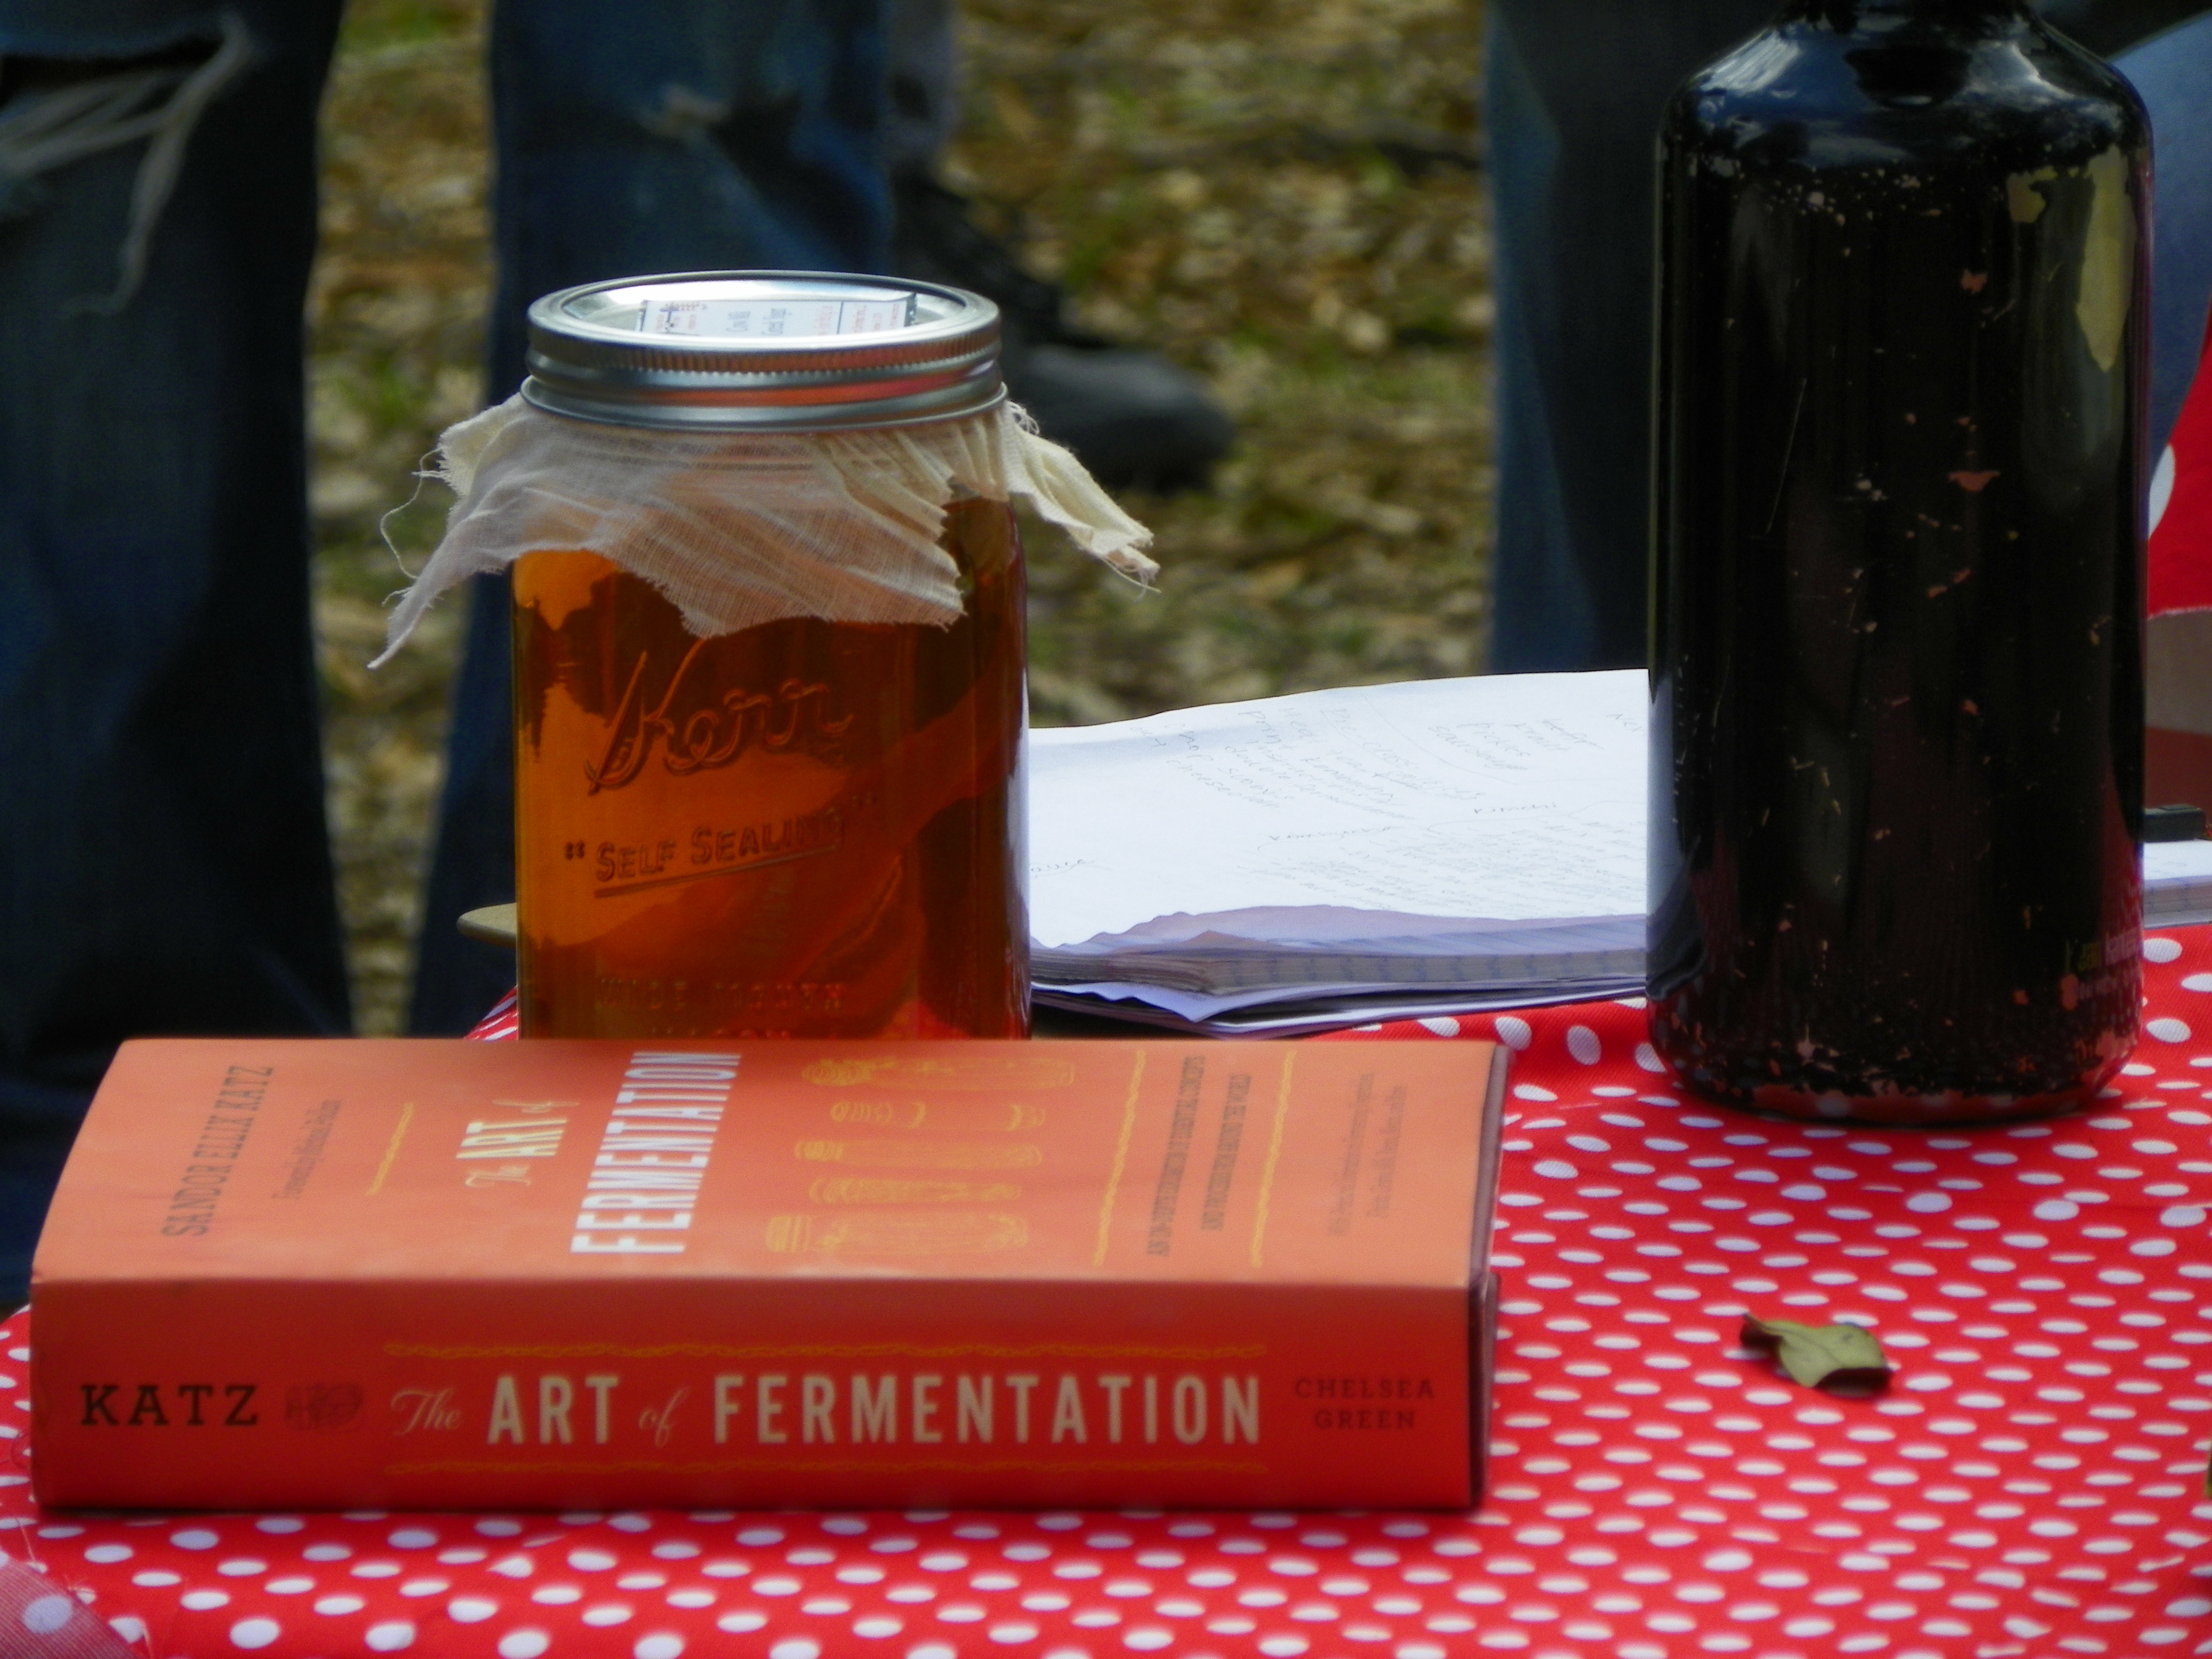 For the love of fermentation! Photo credit: Sherry Boas